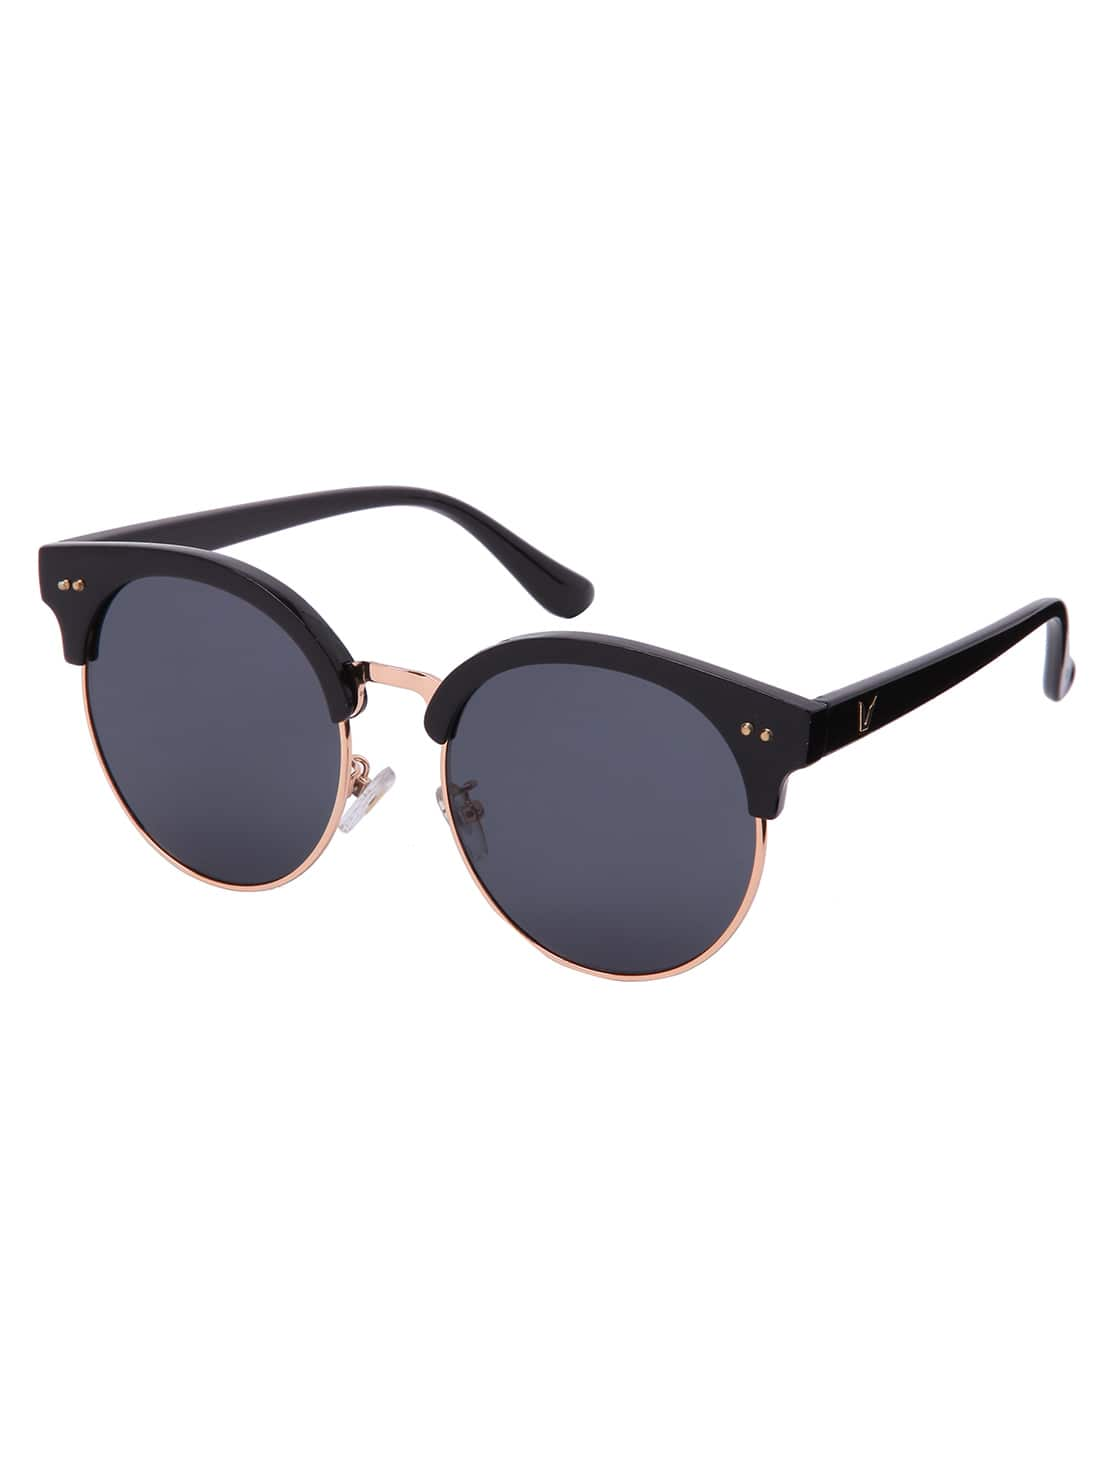 Find great deals on eBay for Reflective Sunglasses in Beautiful Sunglasses for Women. Shop with confidence.